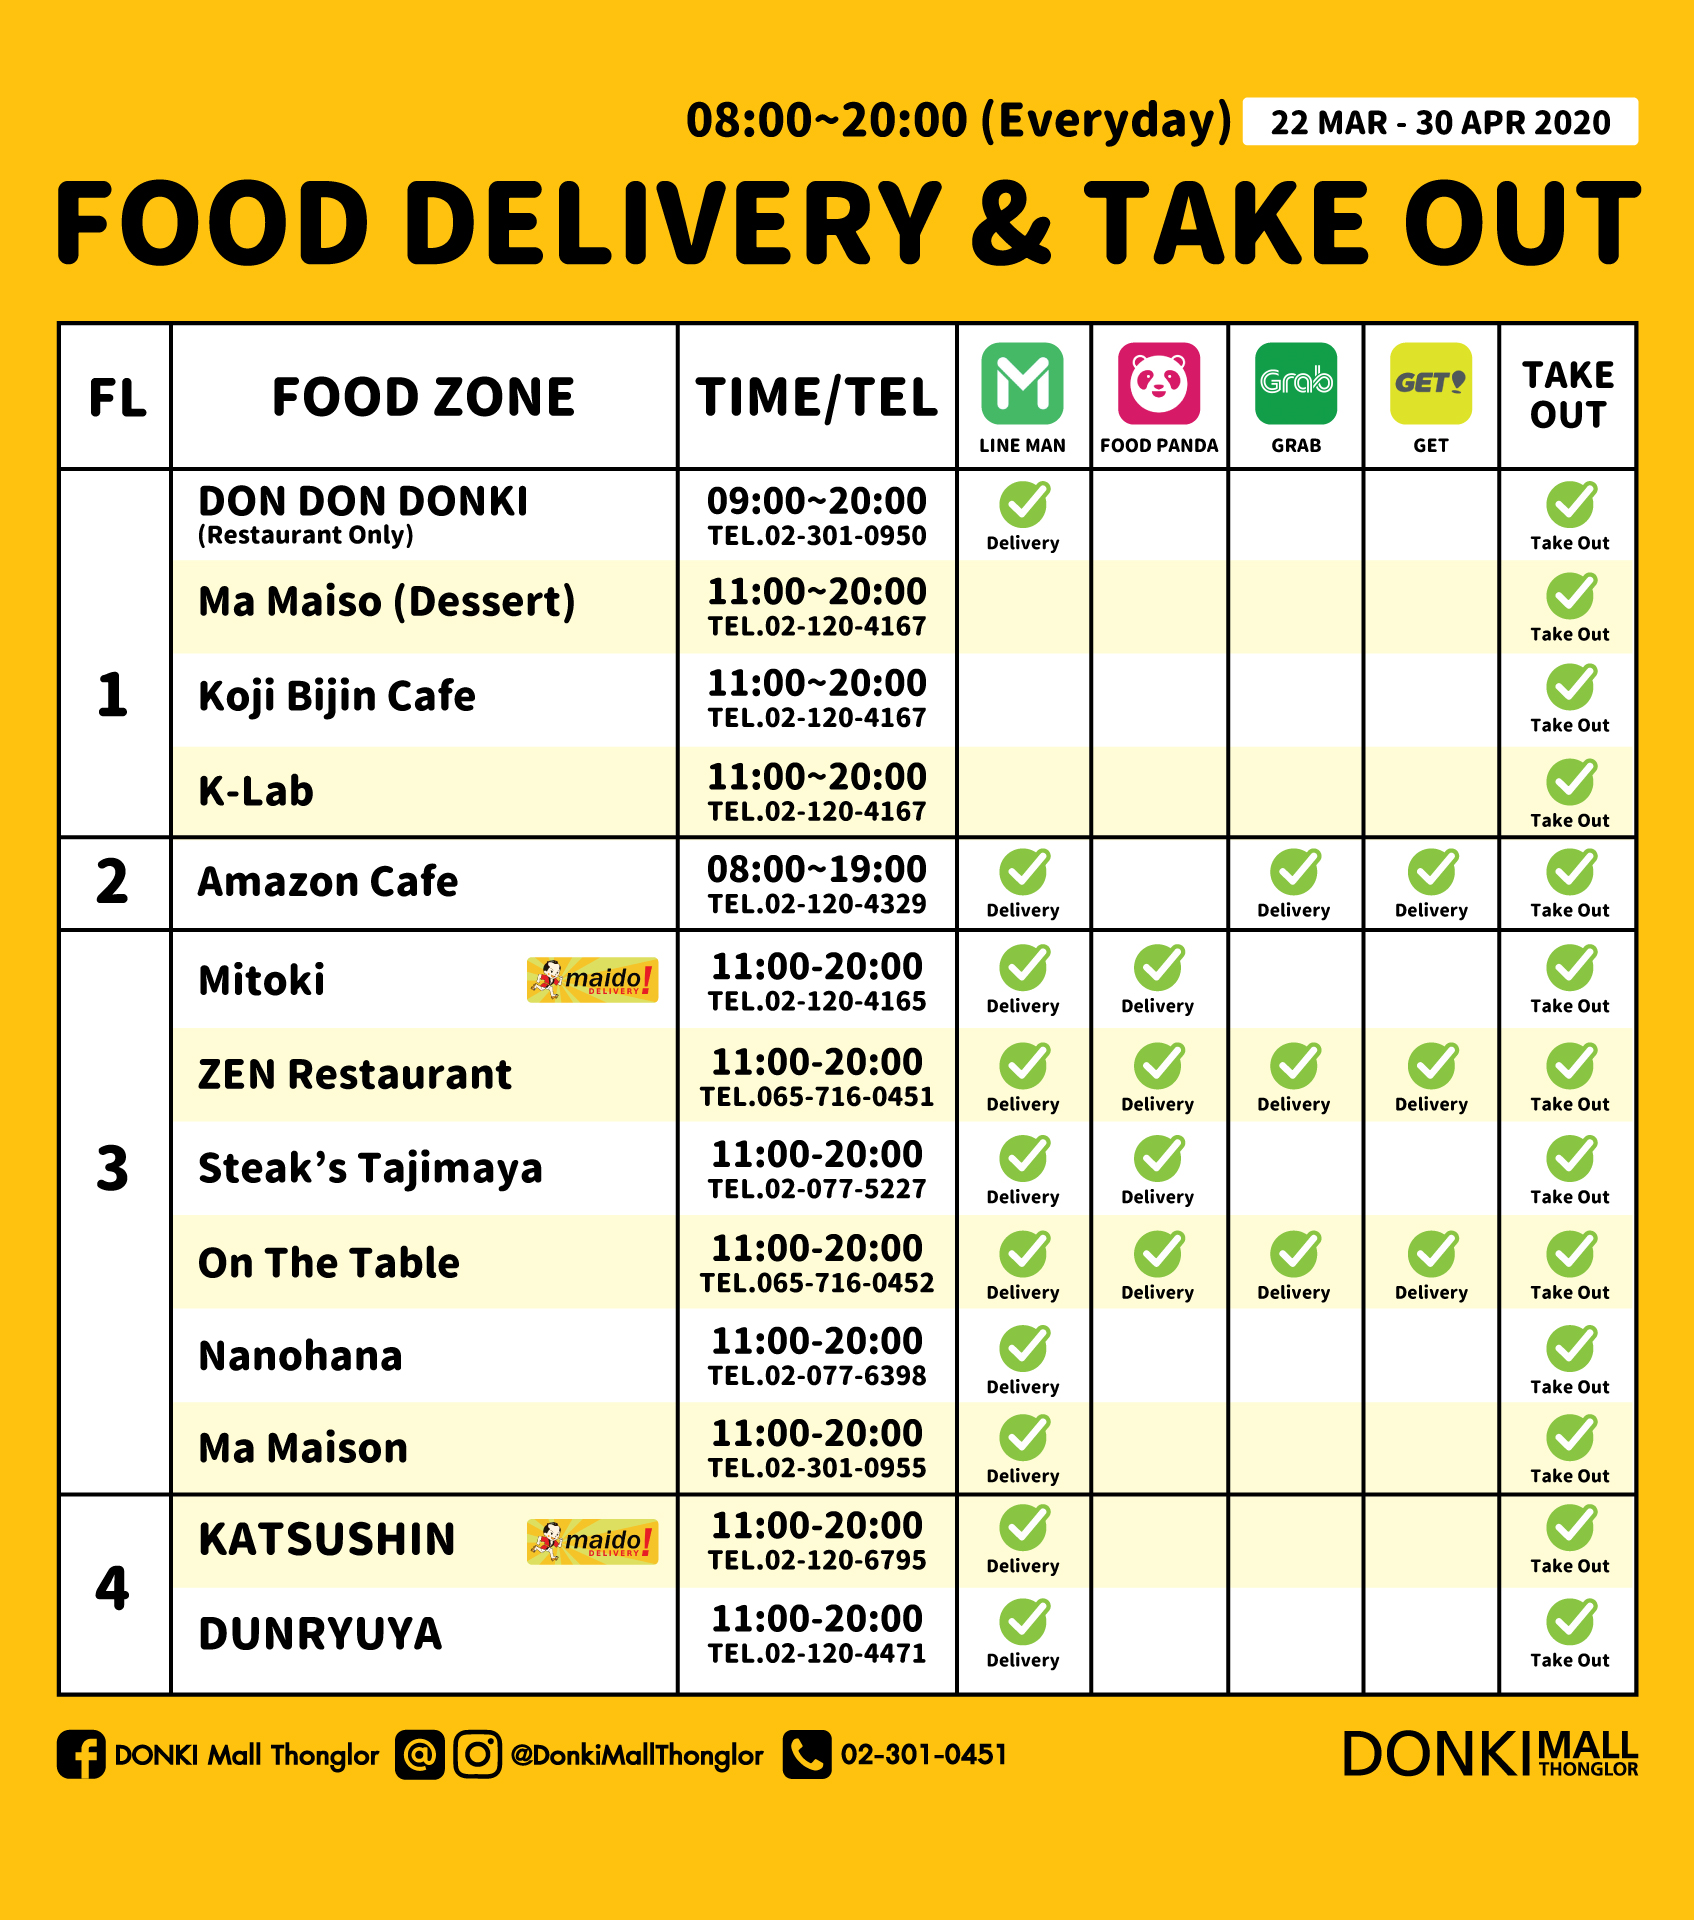 FOOD DELIVERY & TAKE OUT